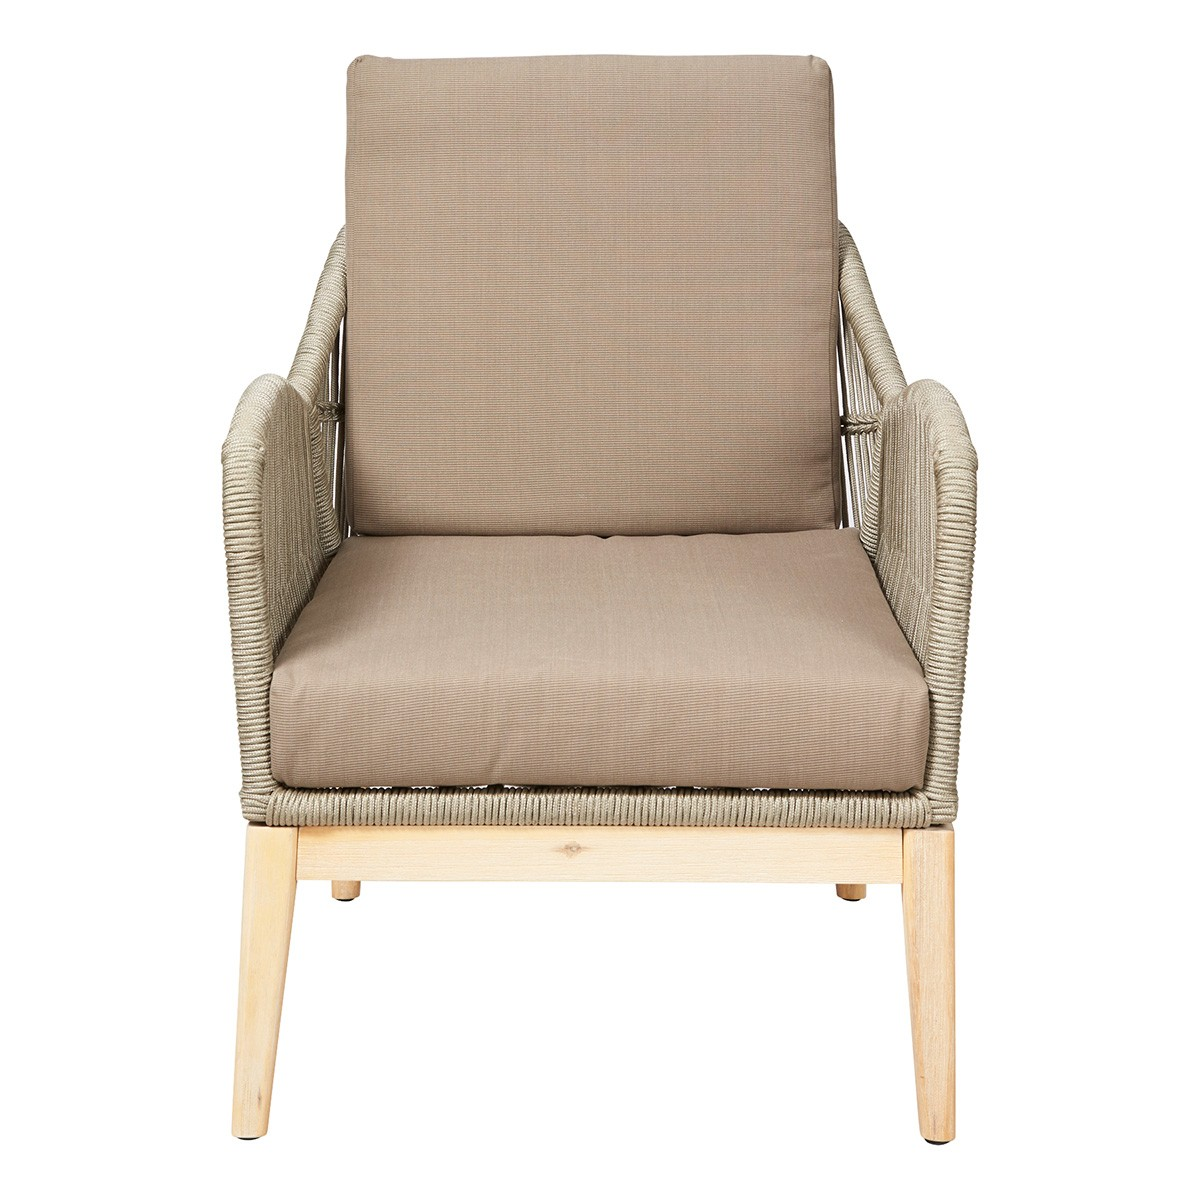 Bentley Indoor / Outdoor Lounge Armchair, Taupe